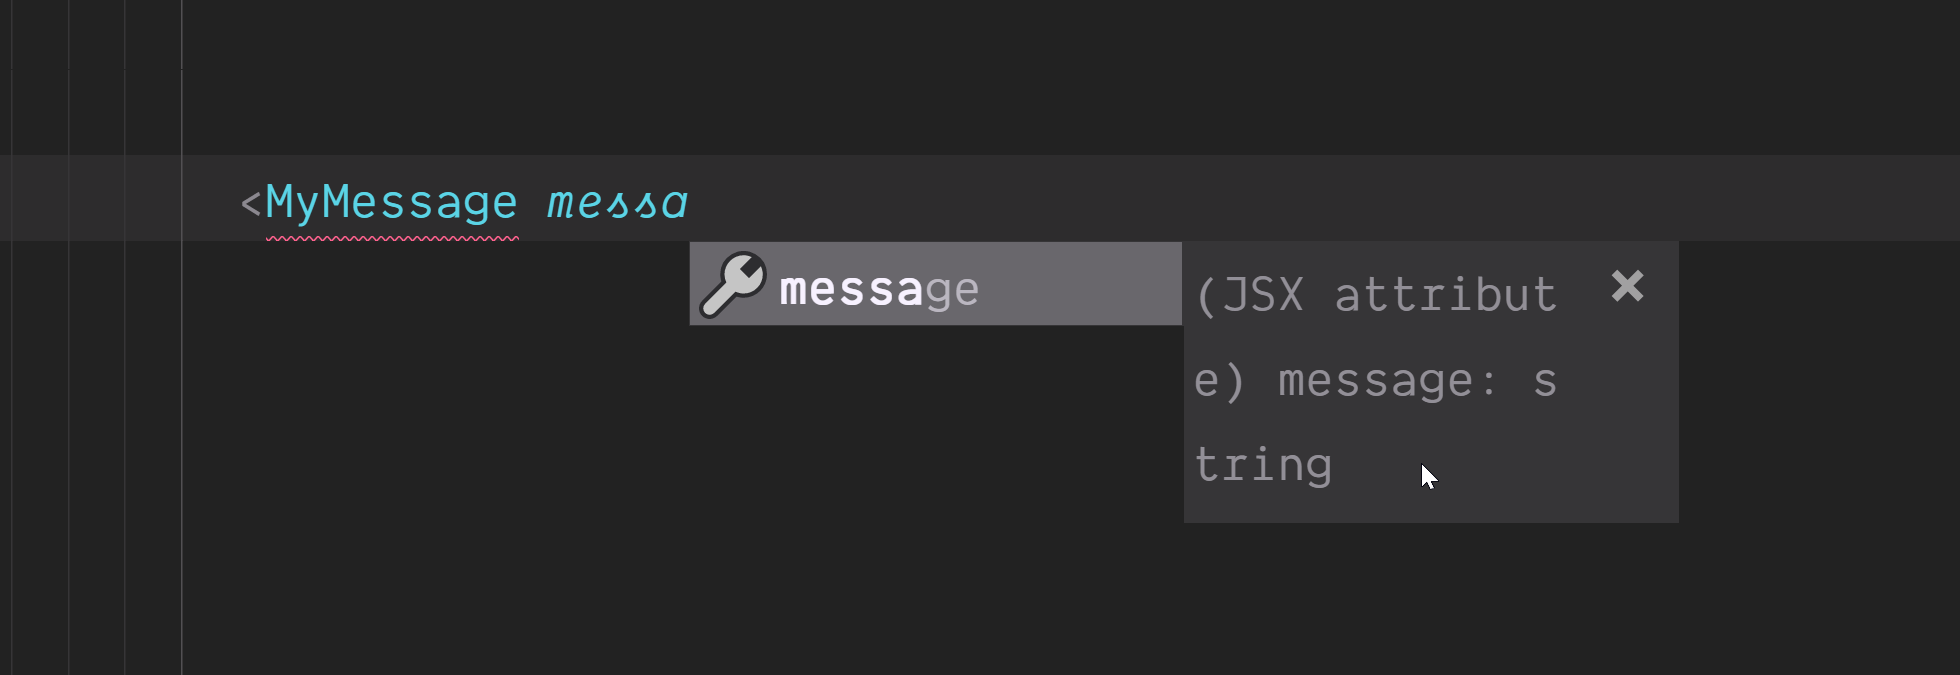 Screenshot of the expected message type.